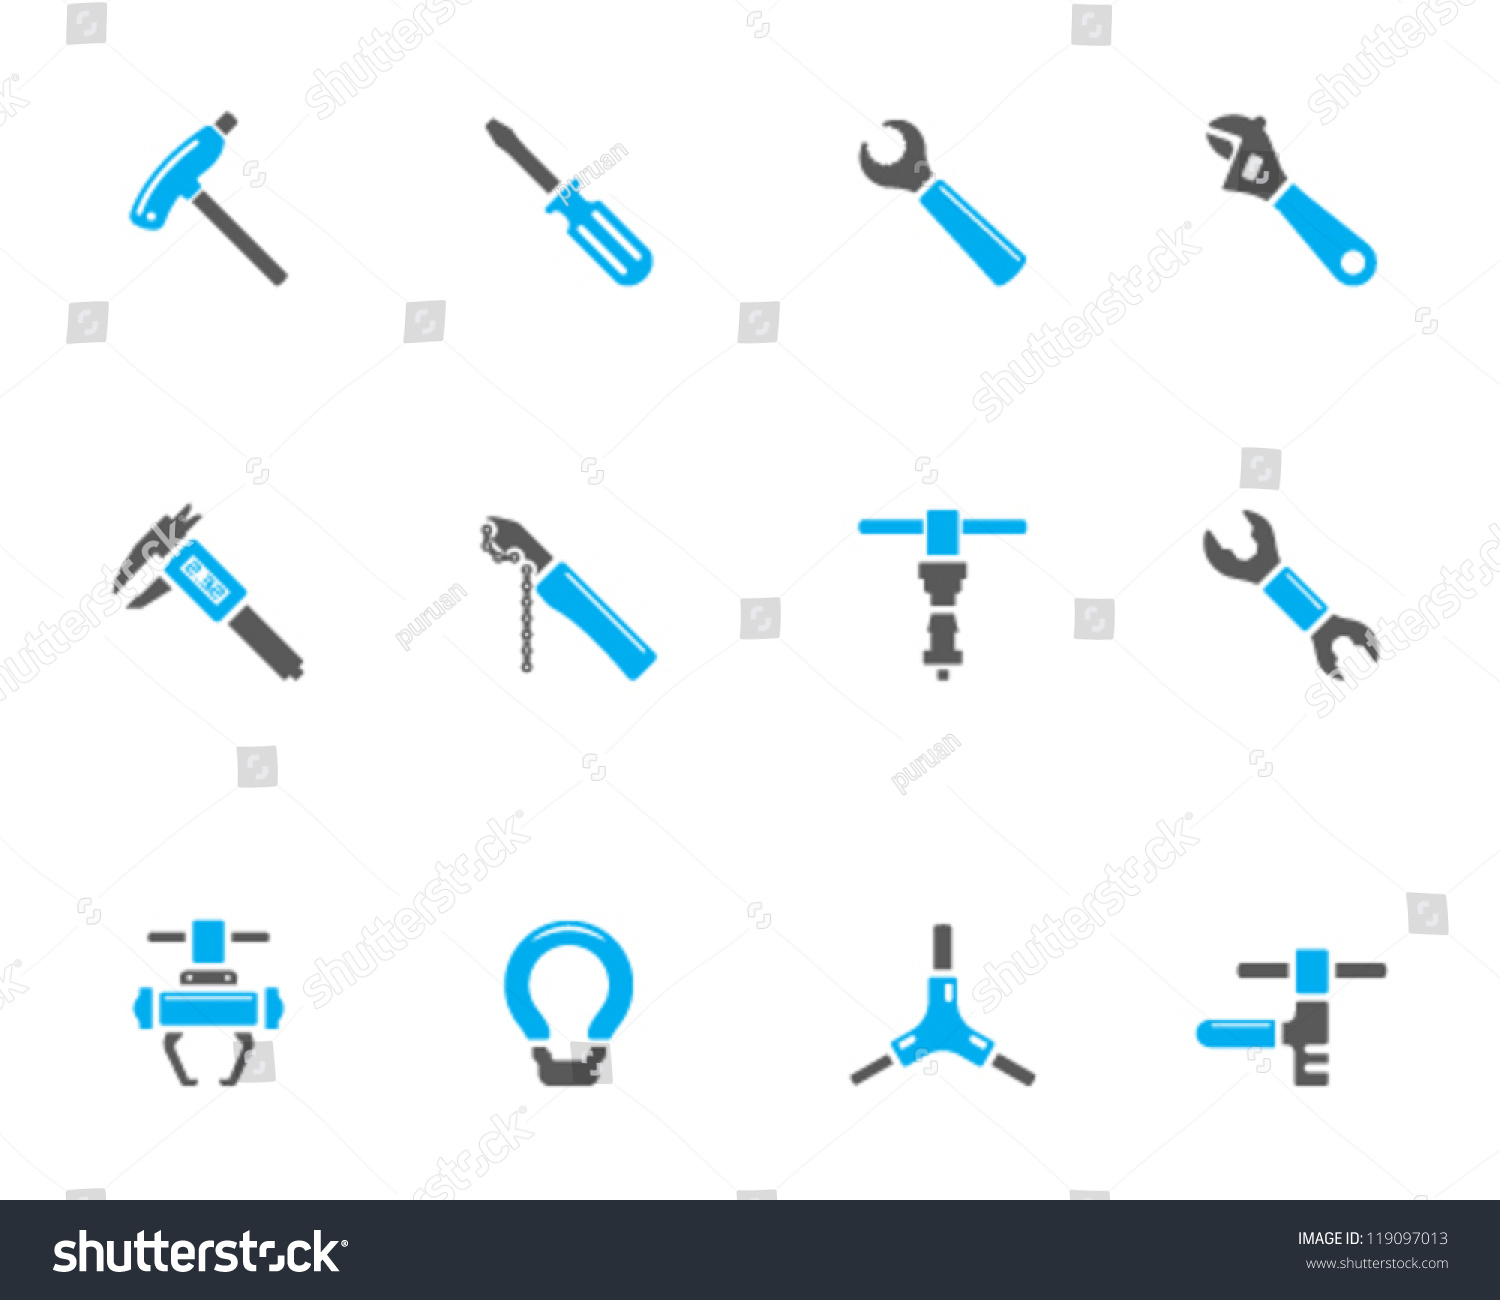 Bike Tools Diagram Wiring Sample Circuit Schematic Drawing Tool Royalty Free Bicycle Icon Series In Duo Tone 119097013 Stock Rear Wheel Assembly